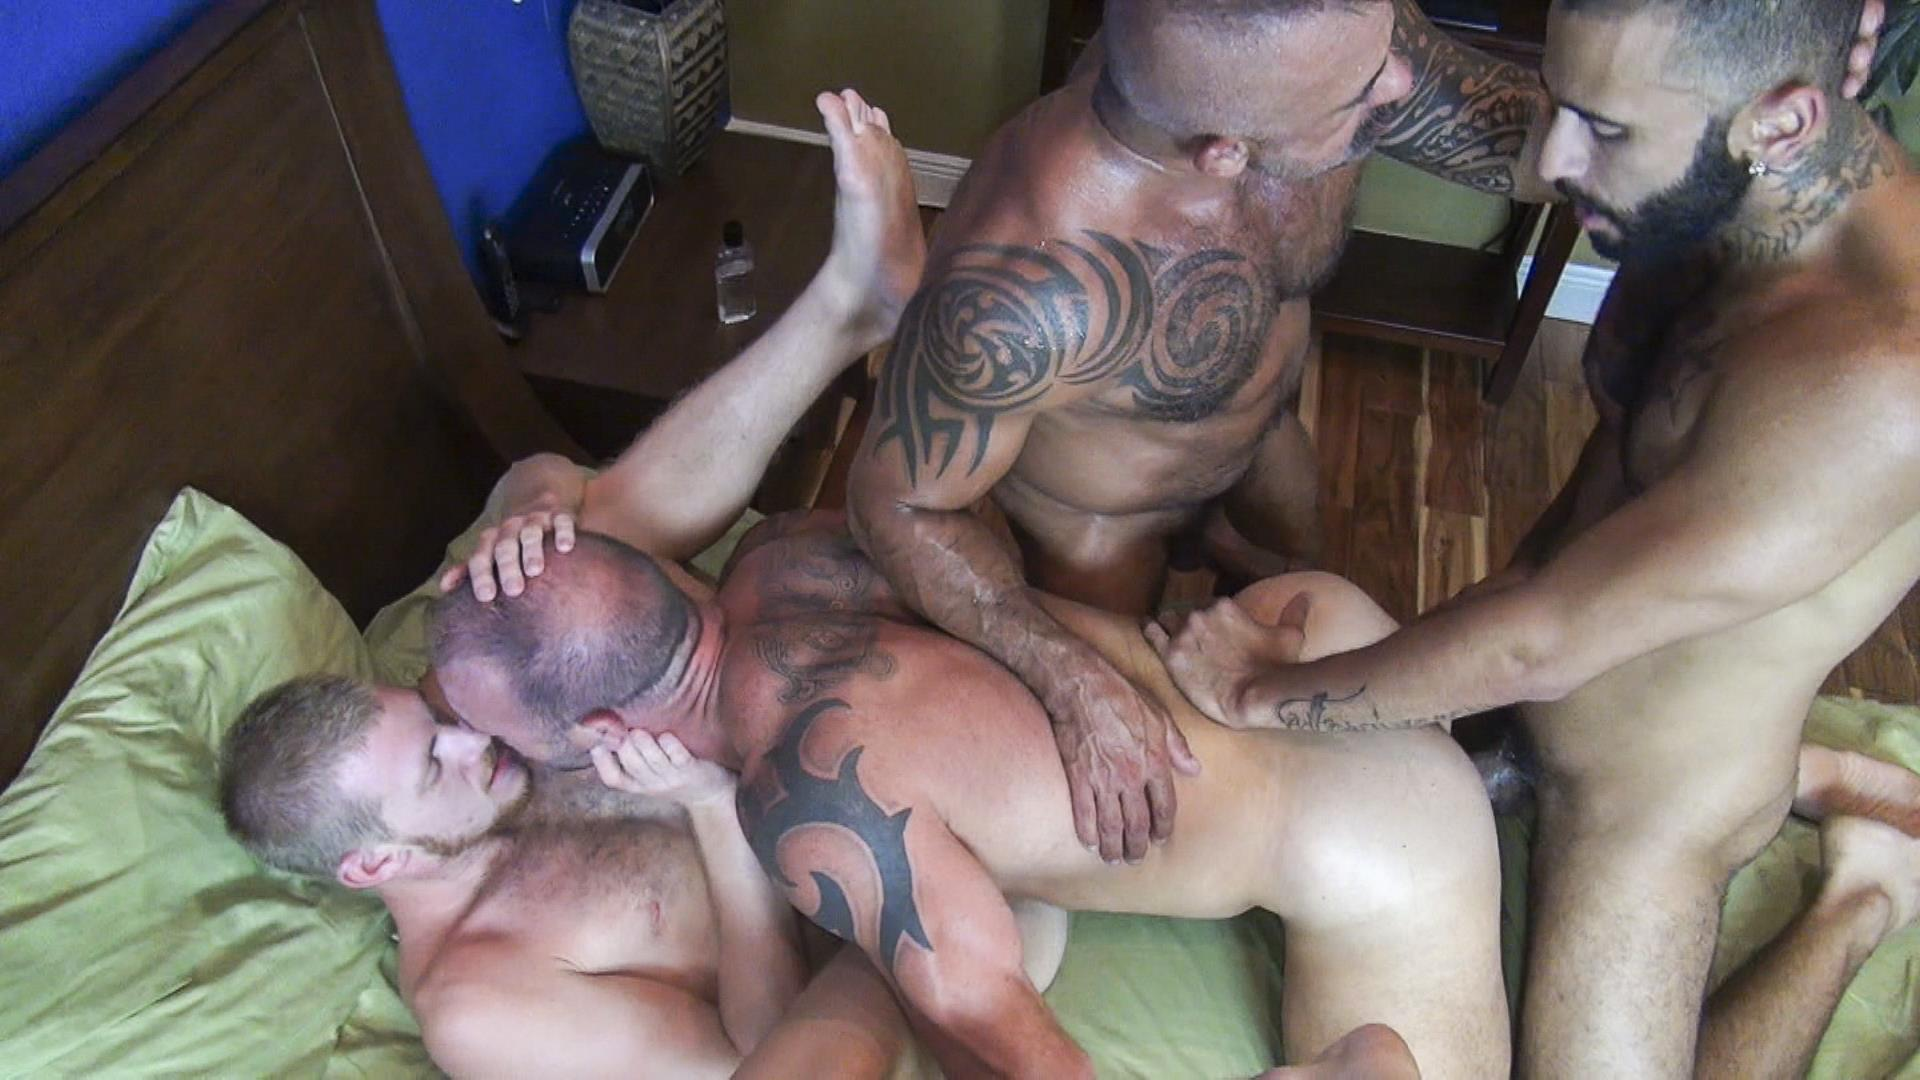 Raw-Fuck-Club-Vic-Rocco-and-Rikk-York-and-Billy-Warren-and-Job-Galt-Bareback-Daddy-Amateur-Gay-Porn-11 Four Hairy Muscle Daddies In A Bareback Fuck Fest Orgy